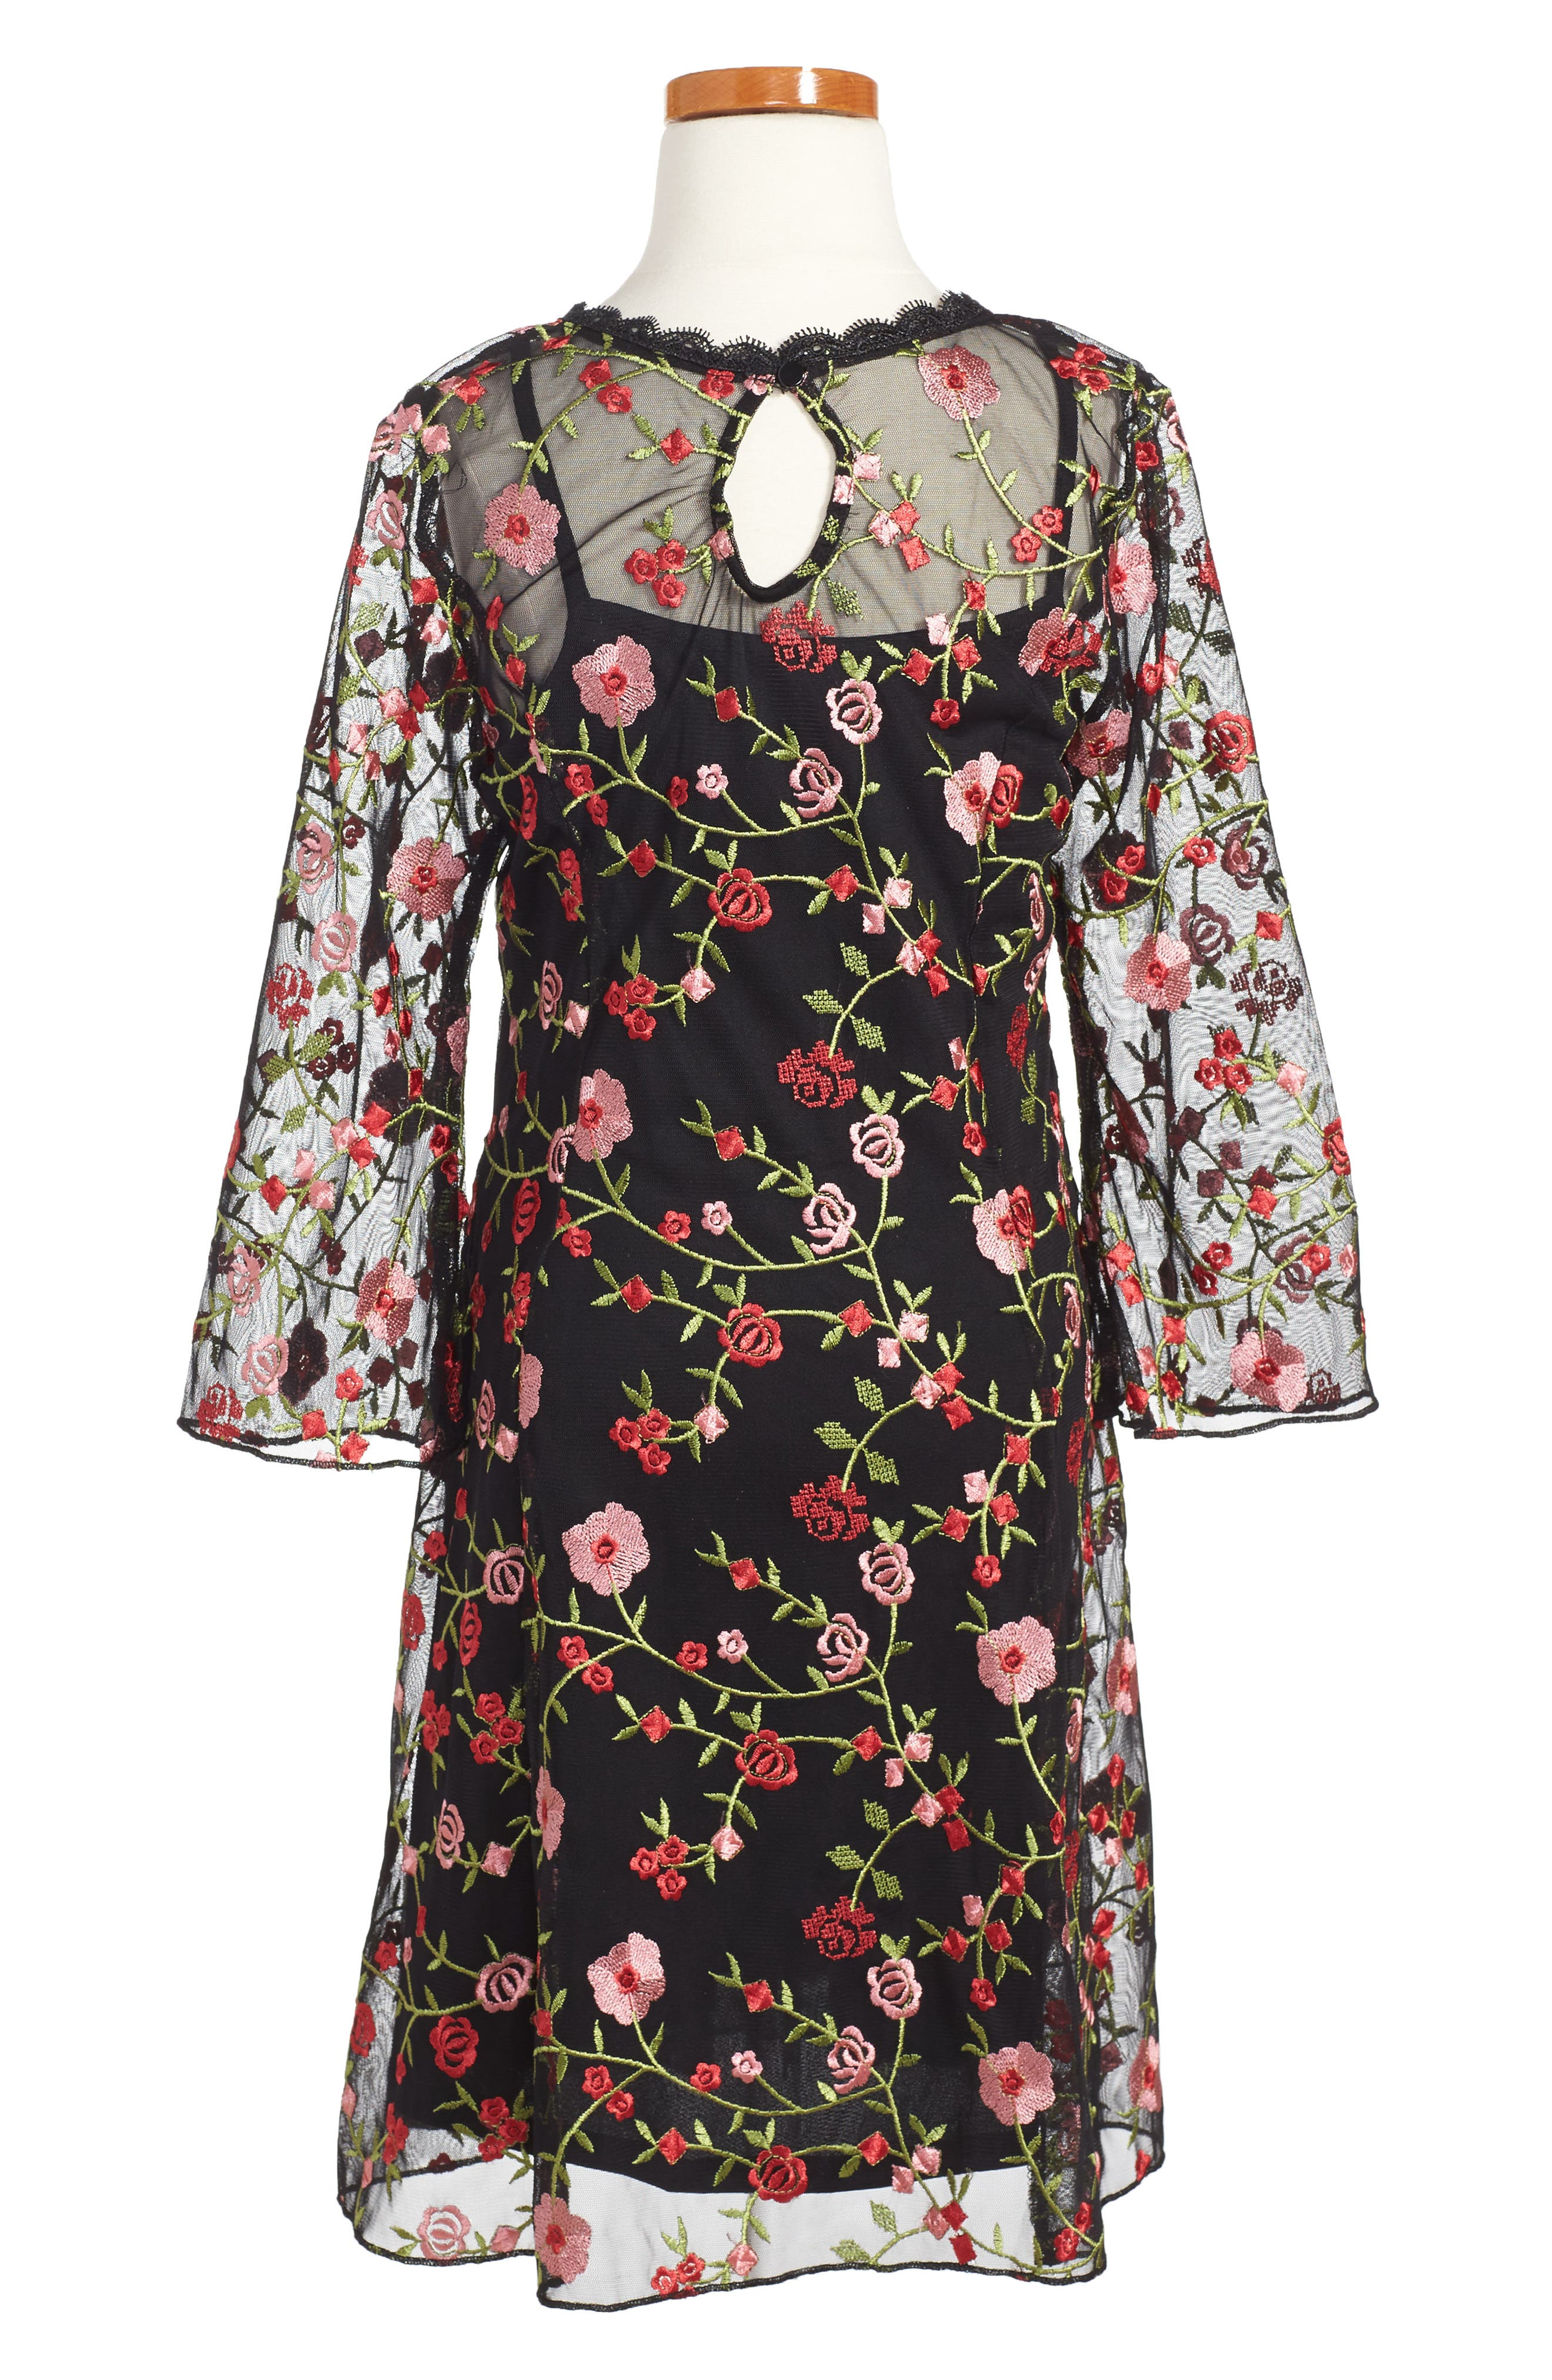 Floral Embroidered Shift Dress,                             Alternate thumbnail 2, color,                             006